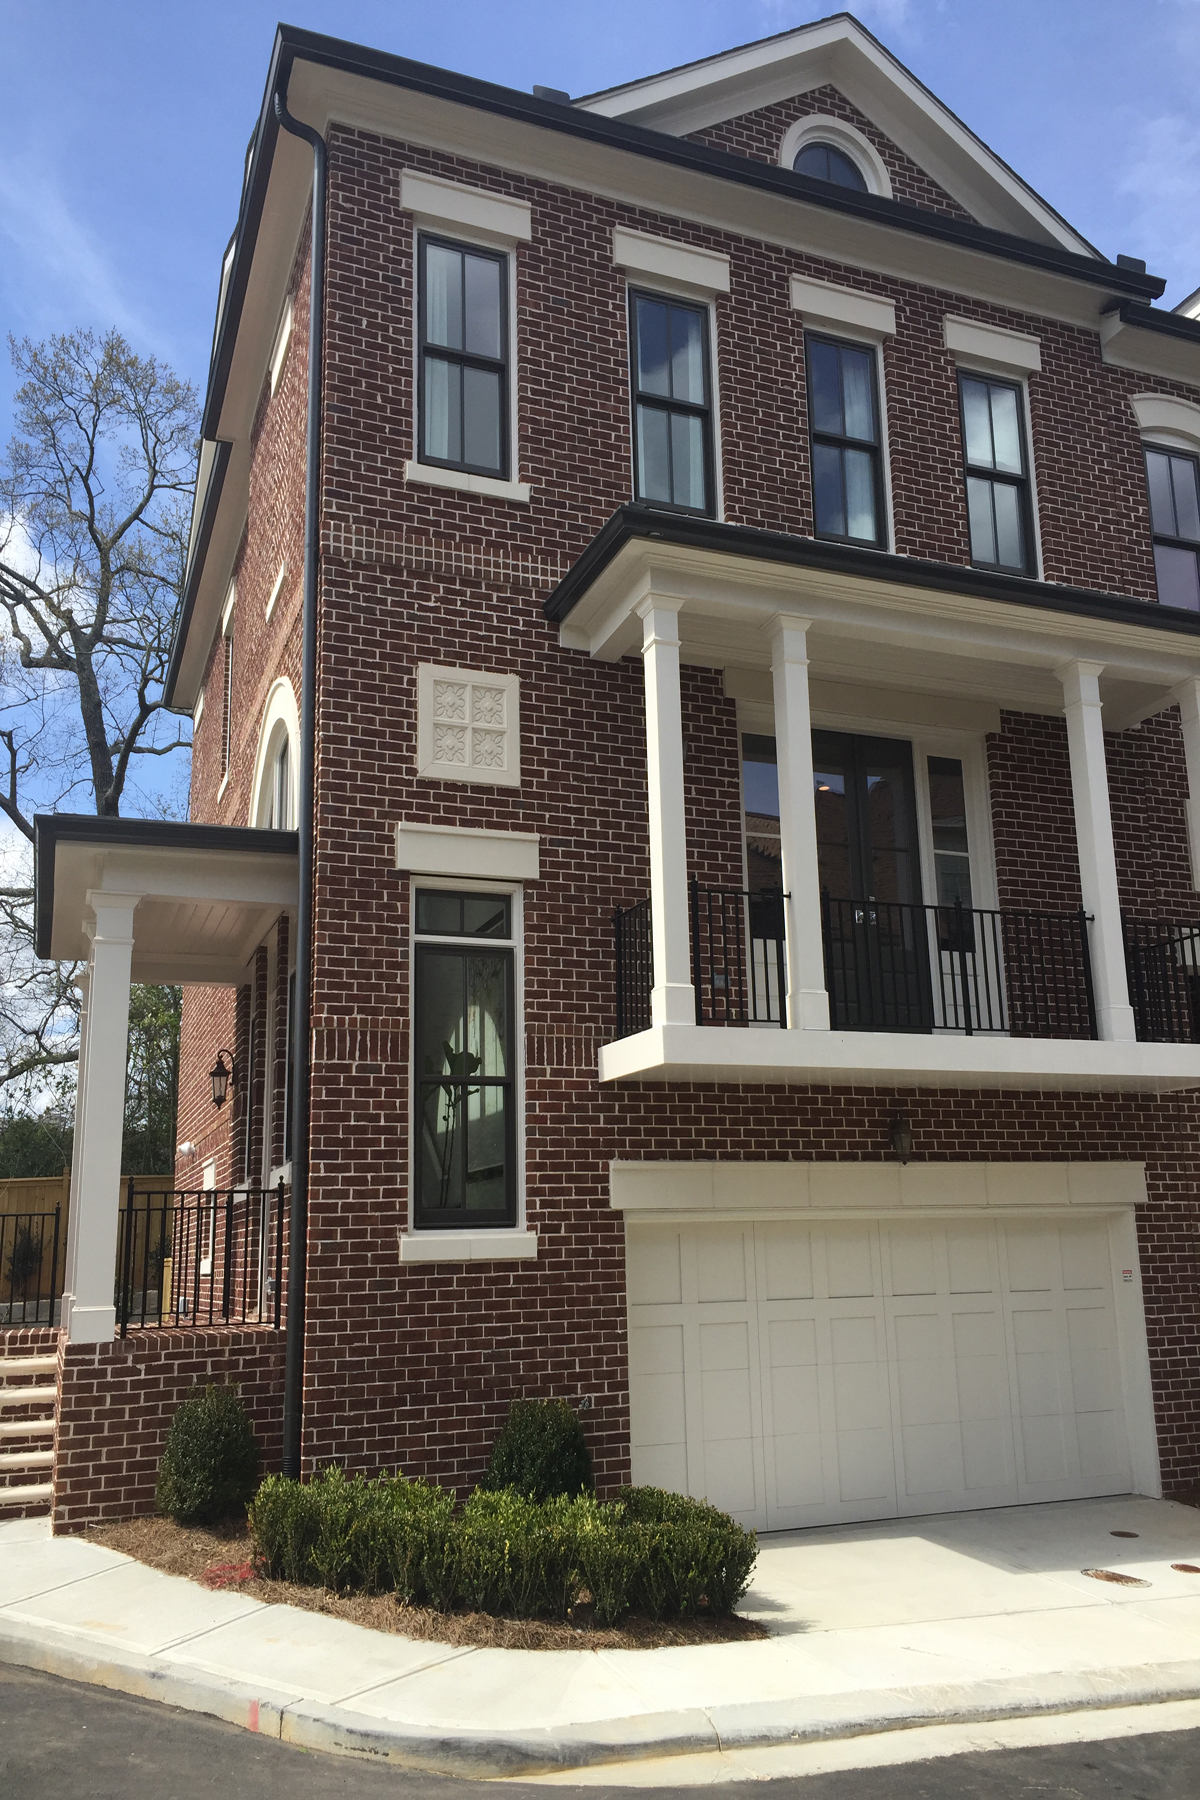 Townhouse for Sale at Beautifully Crafted Townhome 3724 Paige Way Atlanta, Georgia, 30319 United States